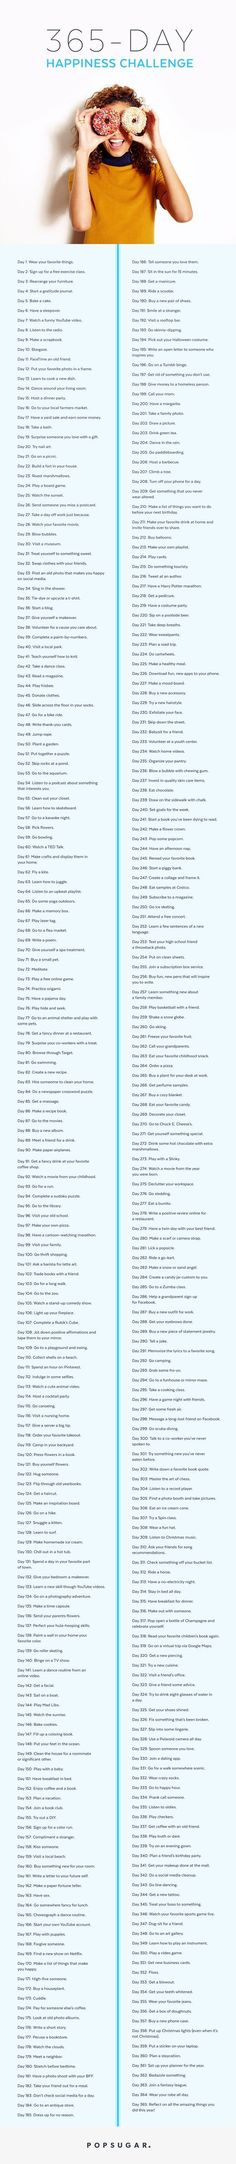 The 365-Day Happiness Challenge: Little things can make a BIG impact. These 365 daily prompts and challenges will help you build your life around the small things that grow your happiness.